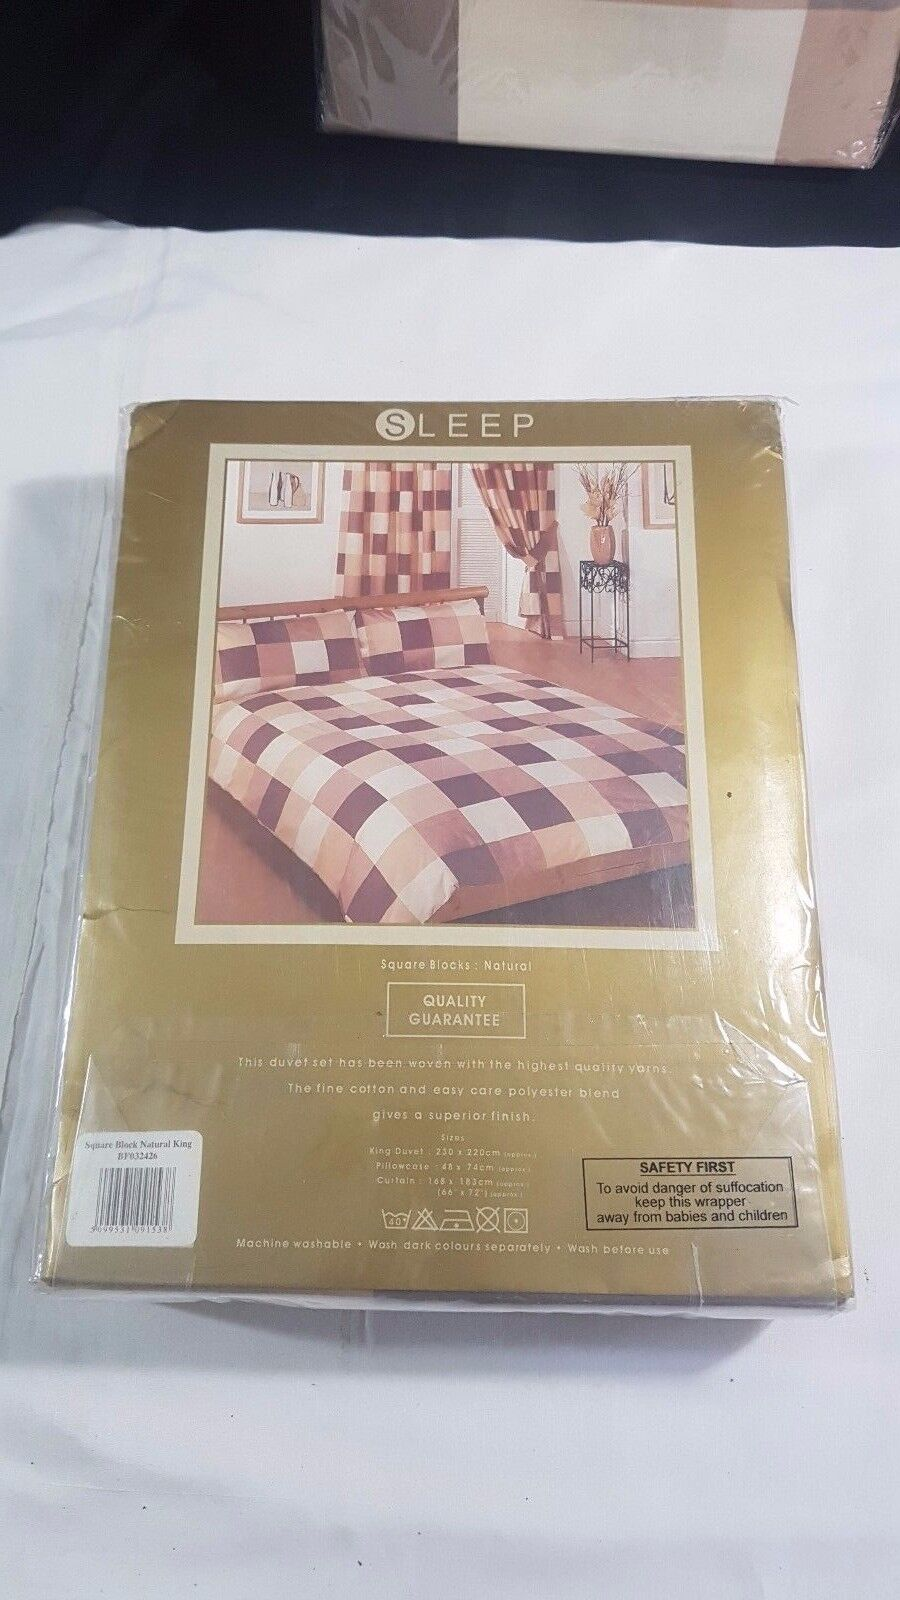 Sleep King Duvet Cover 2 Pillowcases 2 Curtains & Tie Backs Squares Pattern(177)